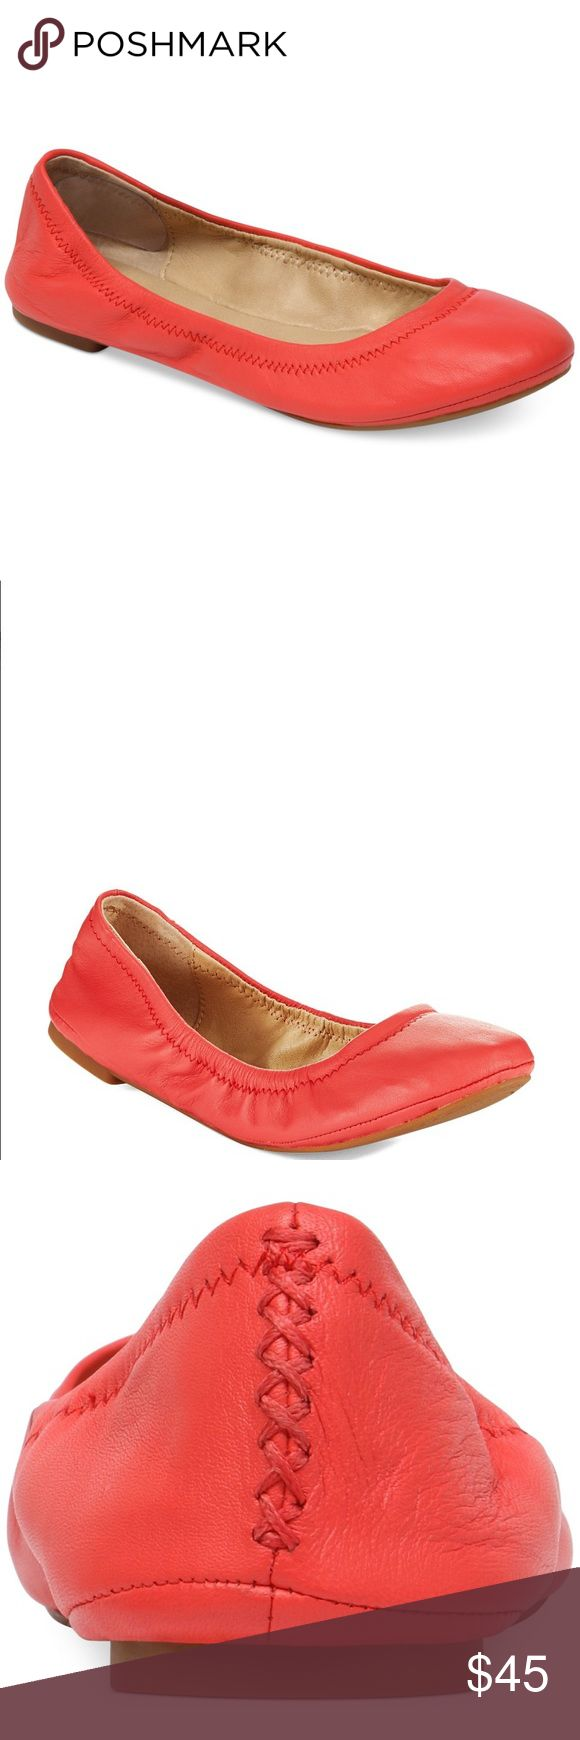 Lucky Brand orange flats Lucky Brand orange ballet flats in women's size 8. They have barely been worn and are in spotless condition! Lucky Brand Shoes Flats & Loafers